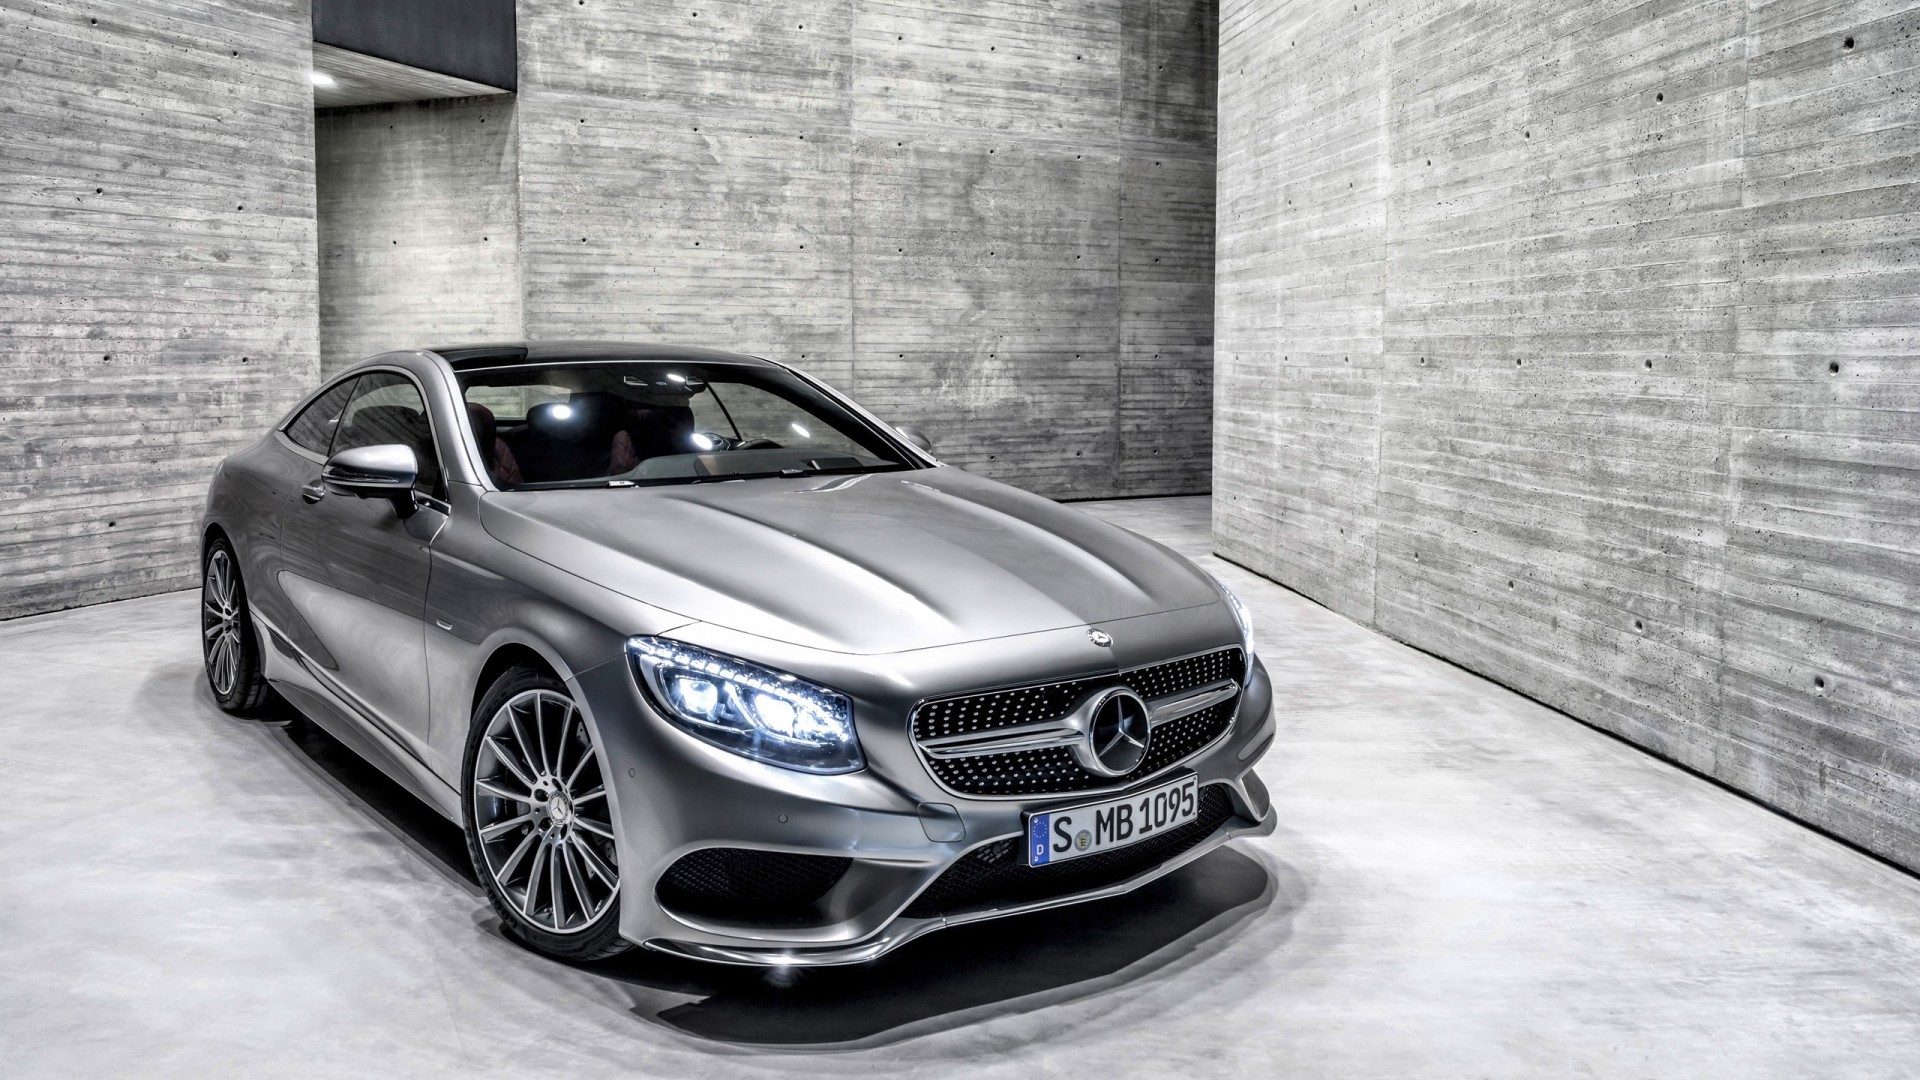 2014 mercedes benz s class coupe wallpaper hd car wallpapers id 4084. Black Bedroom Furniture Sets. Home Design Ideas